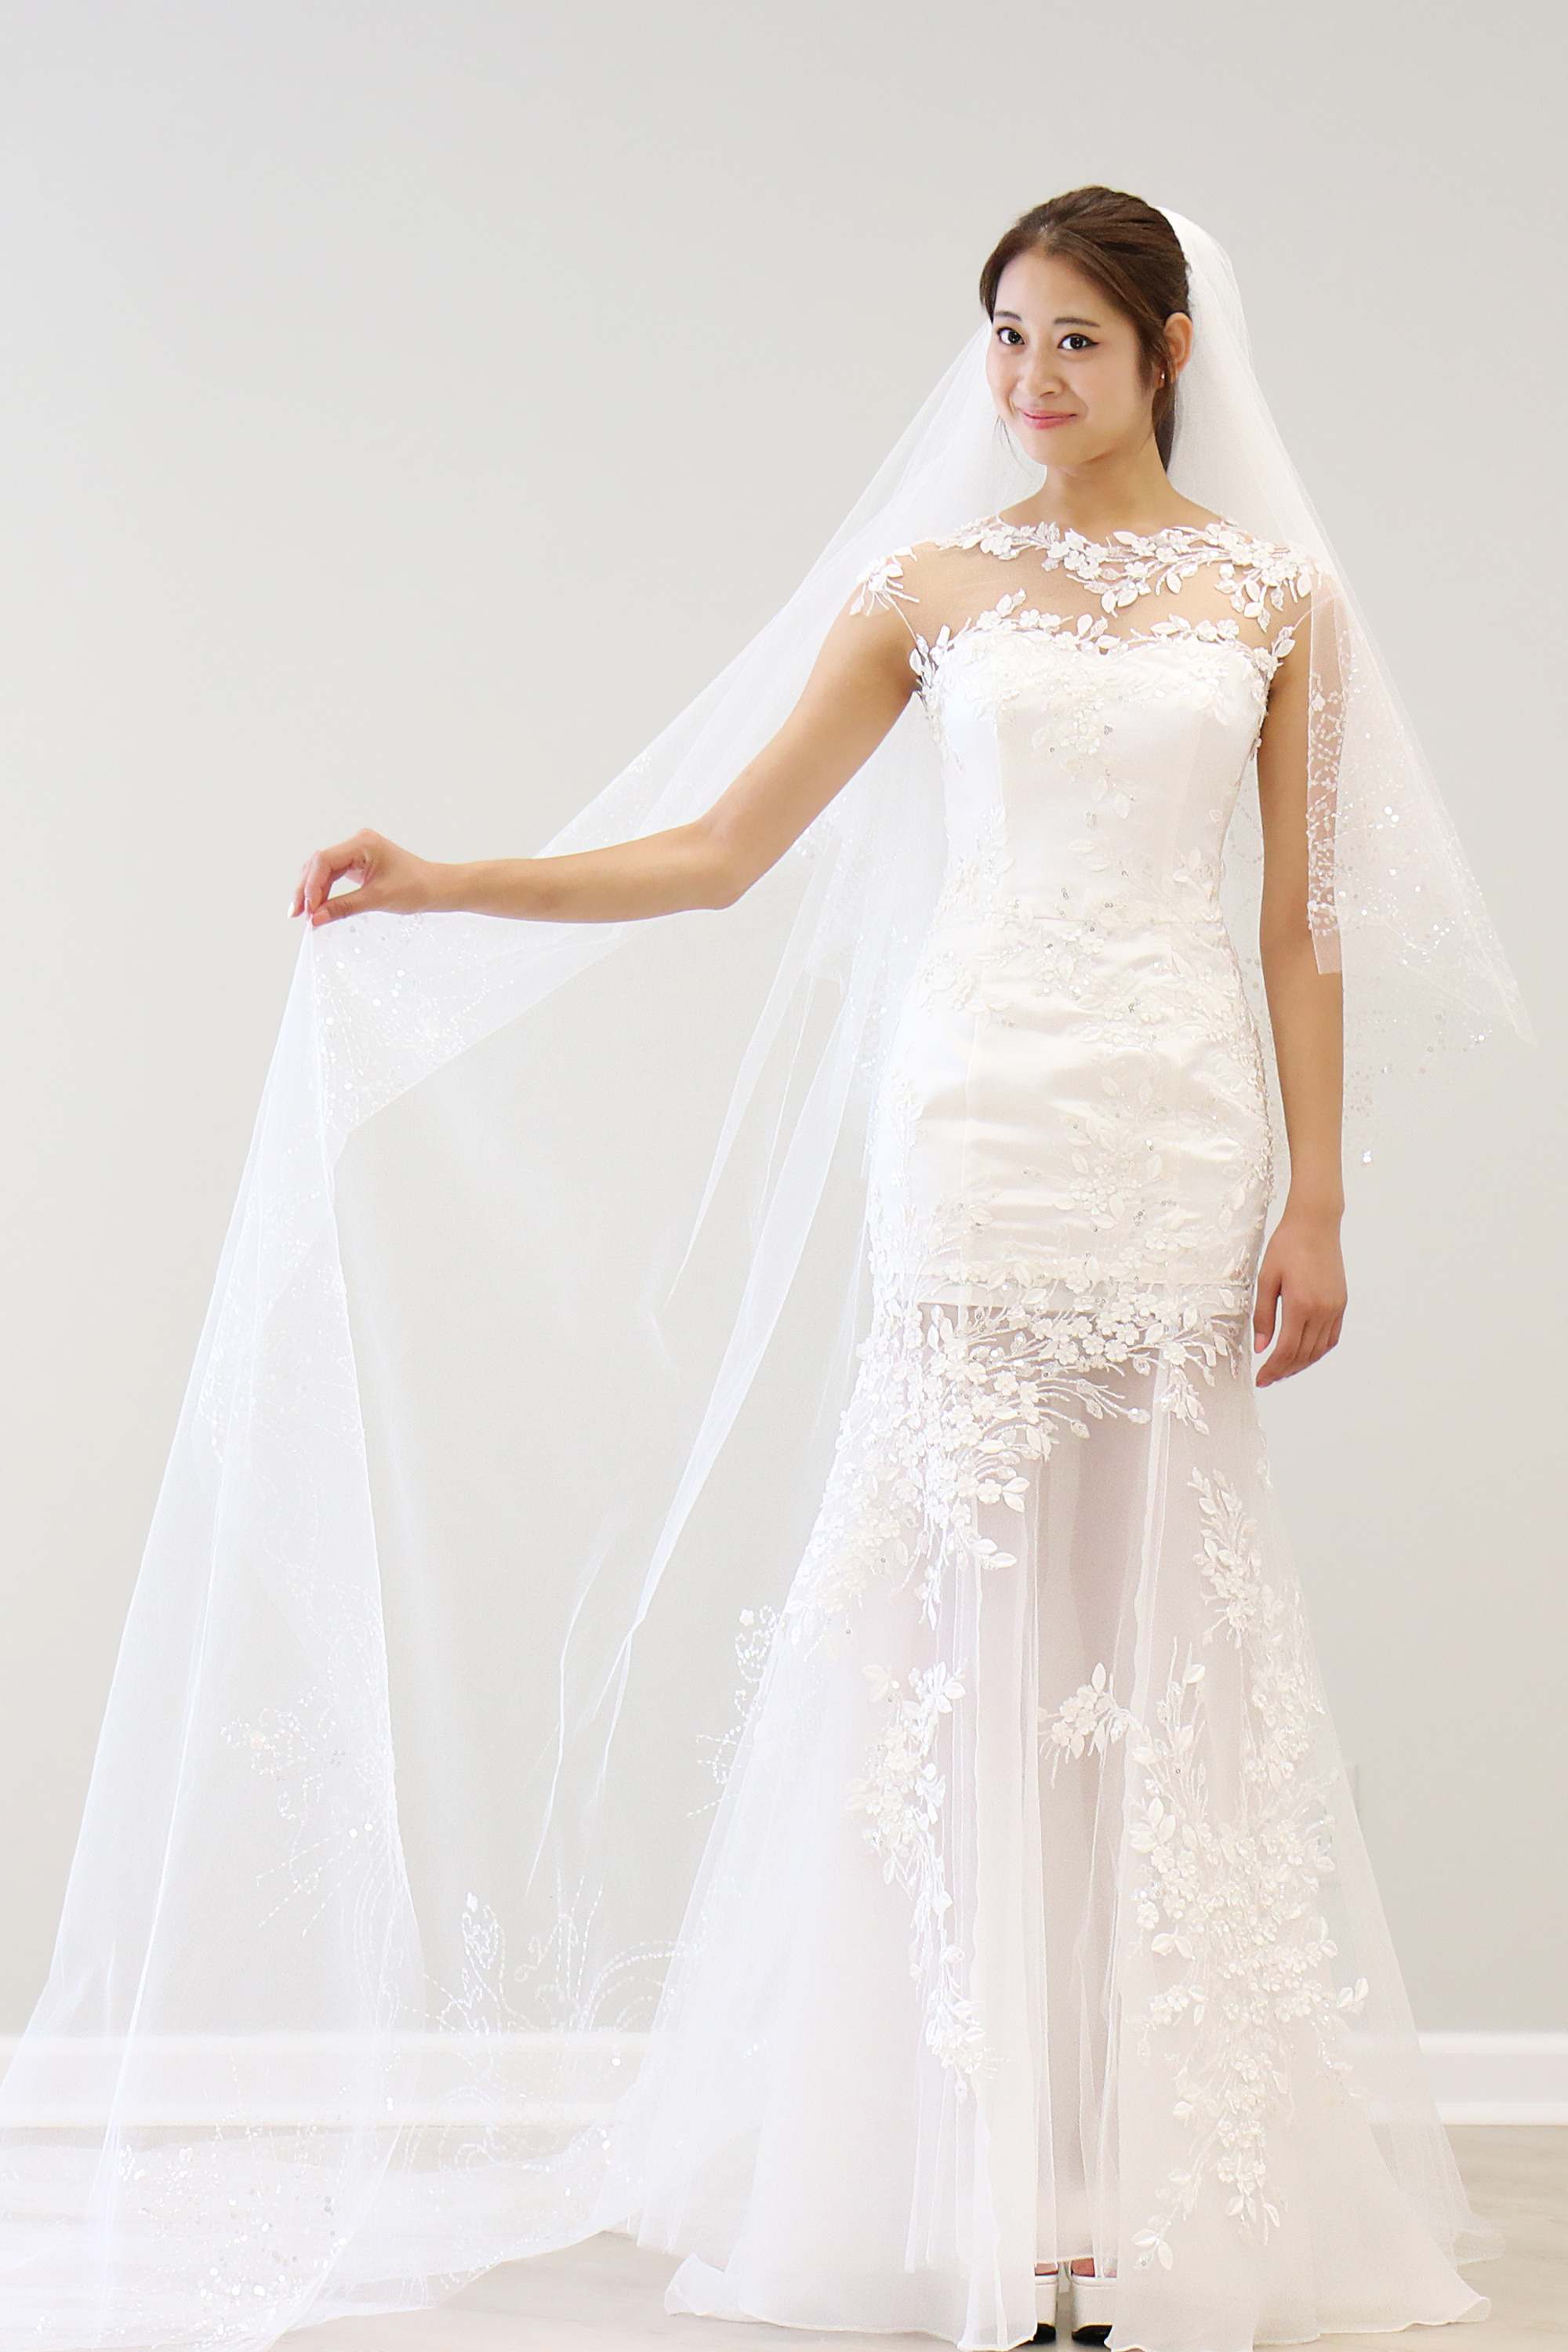 Ciel Blanc, WEDDING DRESS, DRESS, CLBRIDAL